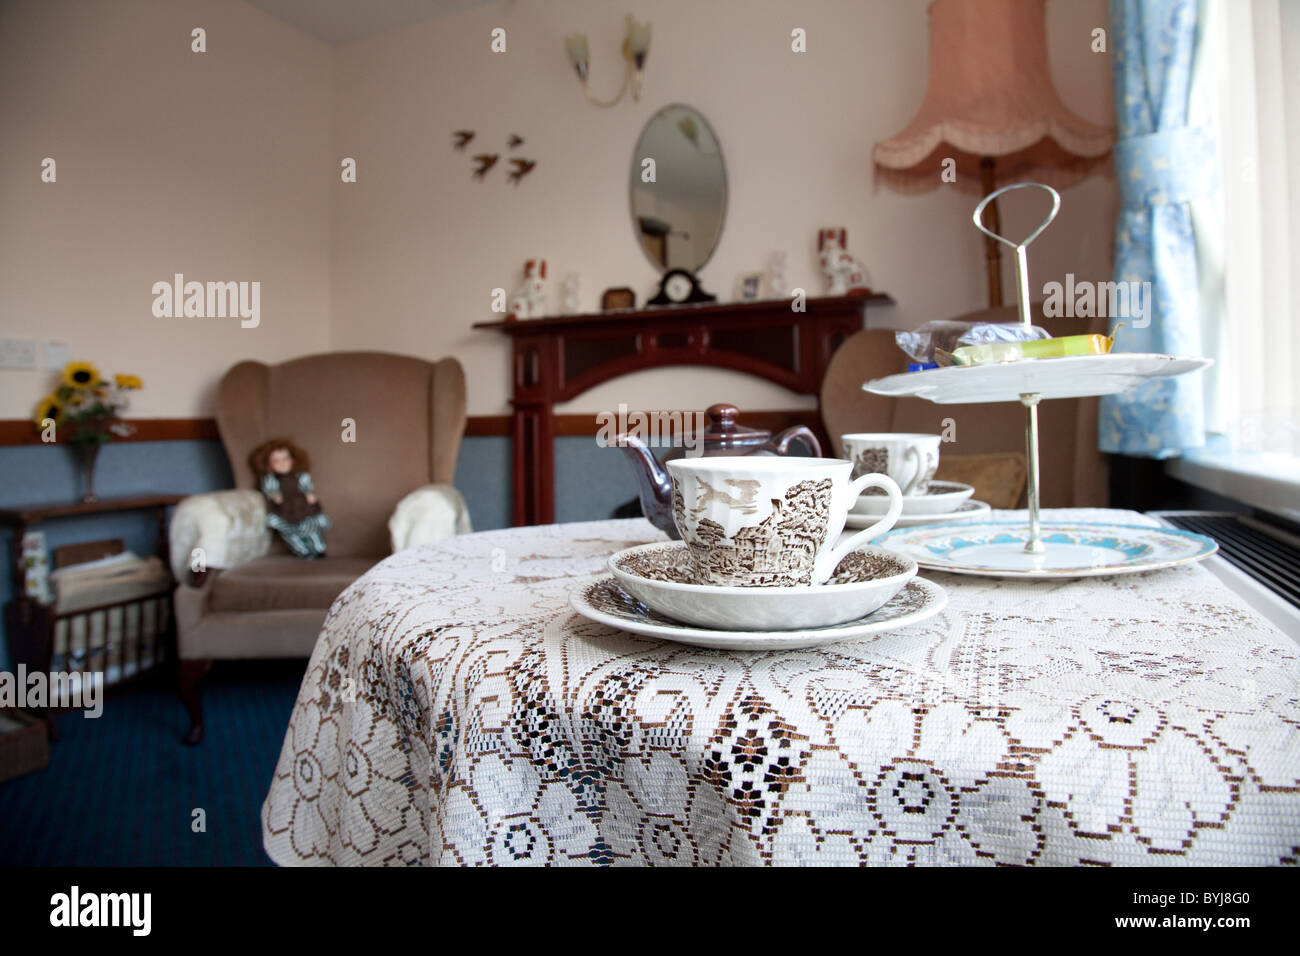 A reminiscence room set in the 1960's at an elderly nursing care home England UK - Stock Image